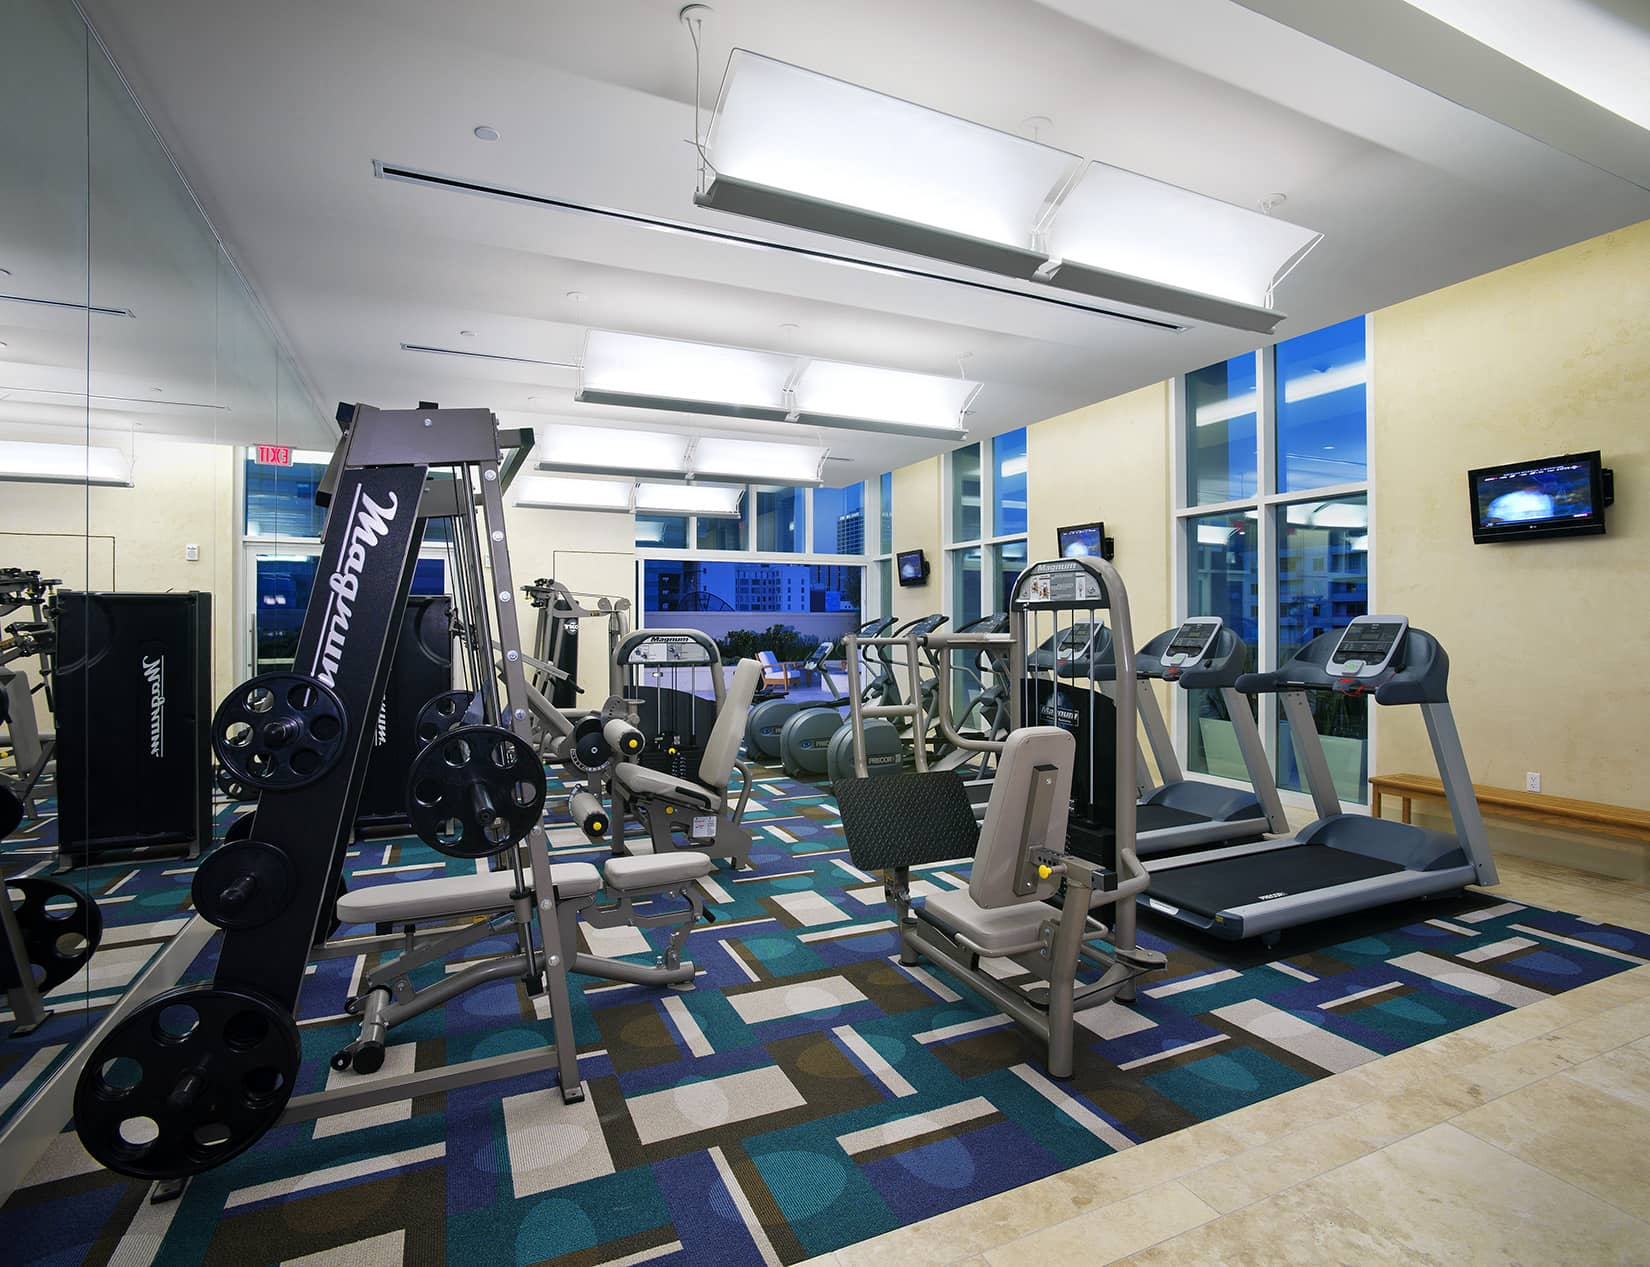 24 hour fitness center with weights and cardio equipment